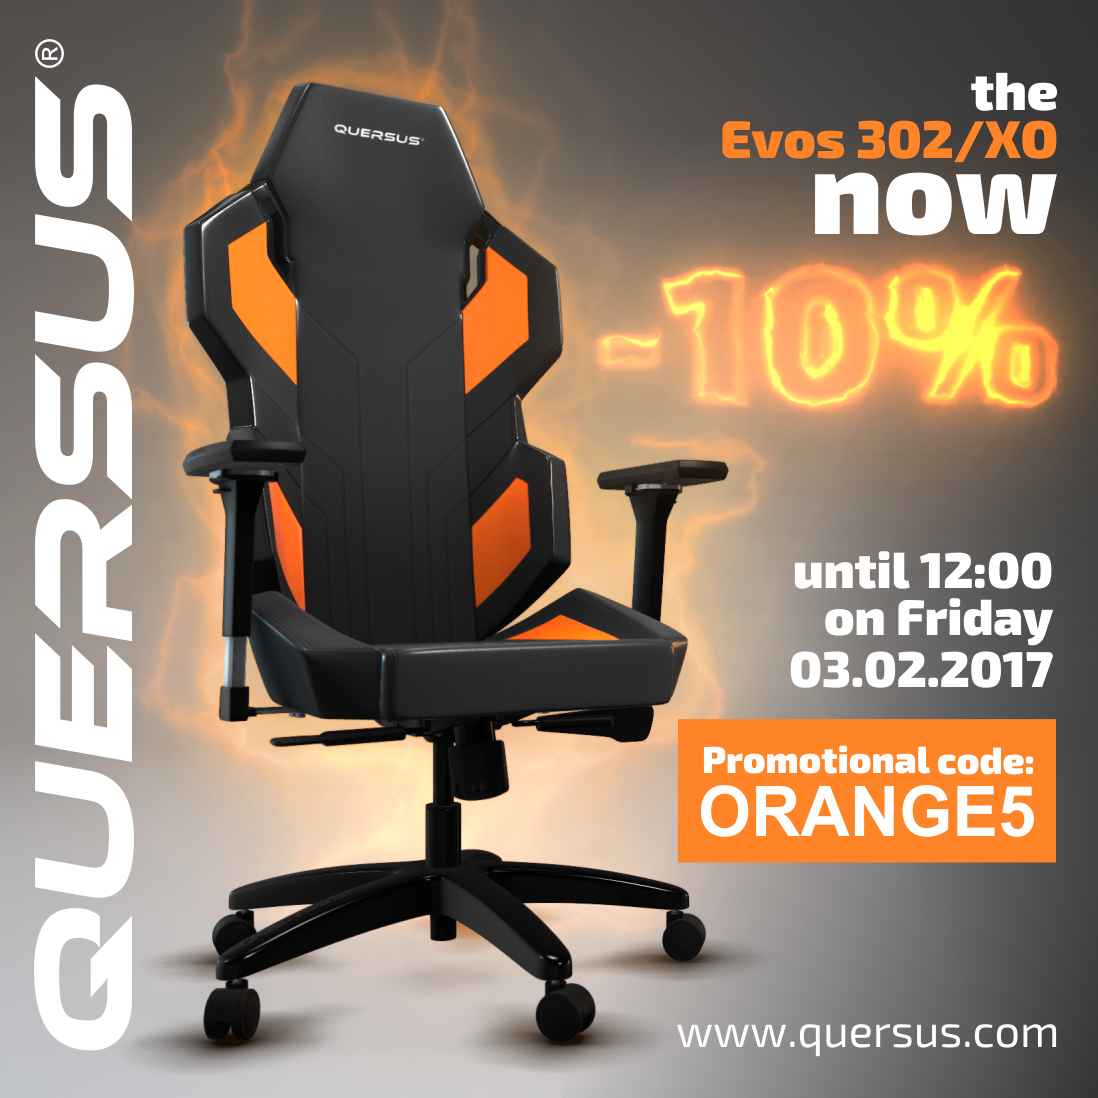 Incredible Special Offer On Evos E302 Xo From Quersus Be Sure To Not Machost Co Dining Chair Design Ideas Machostcouk